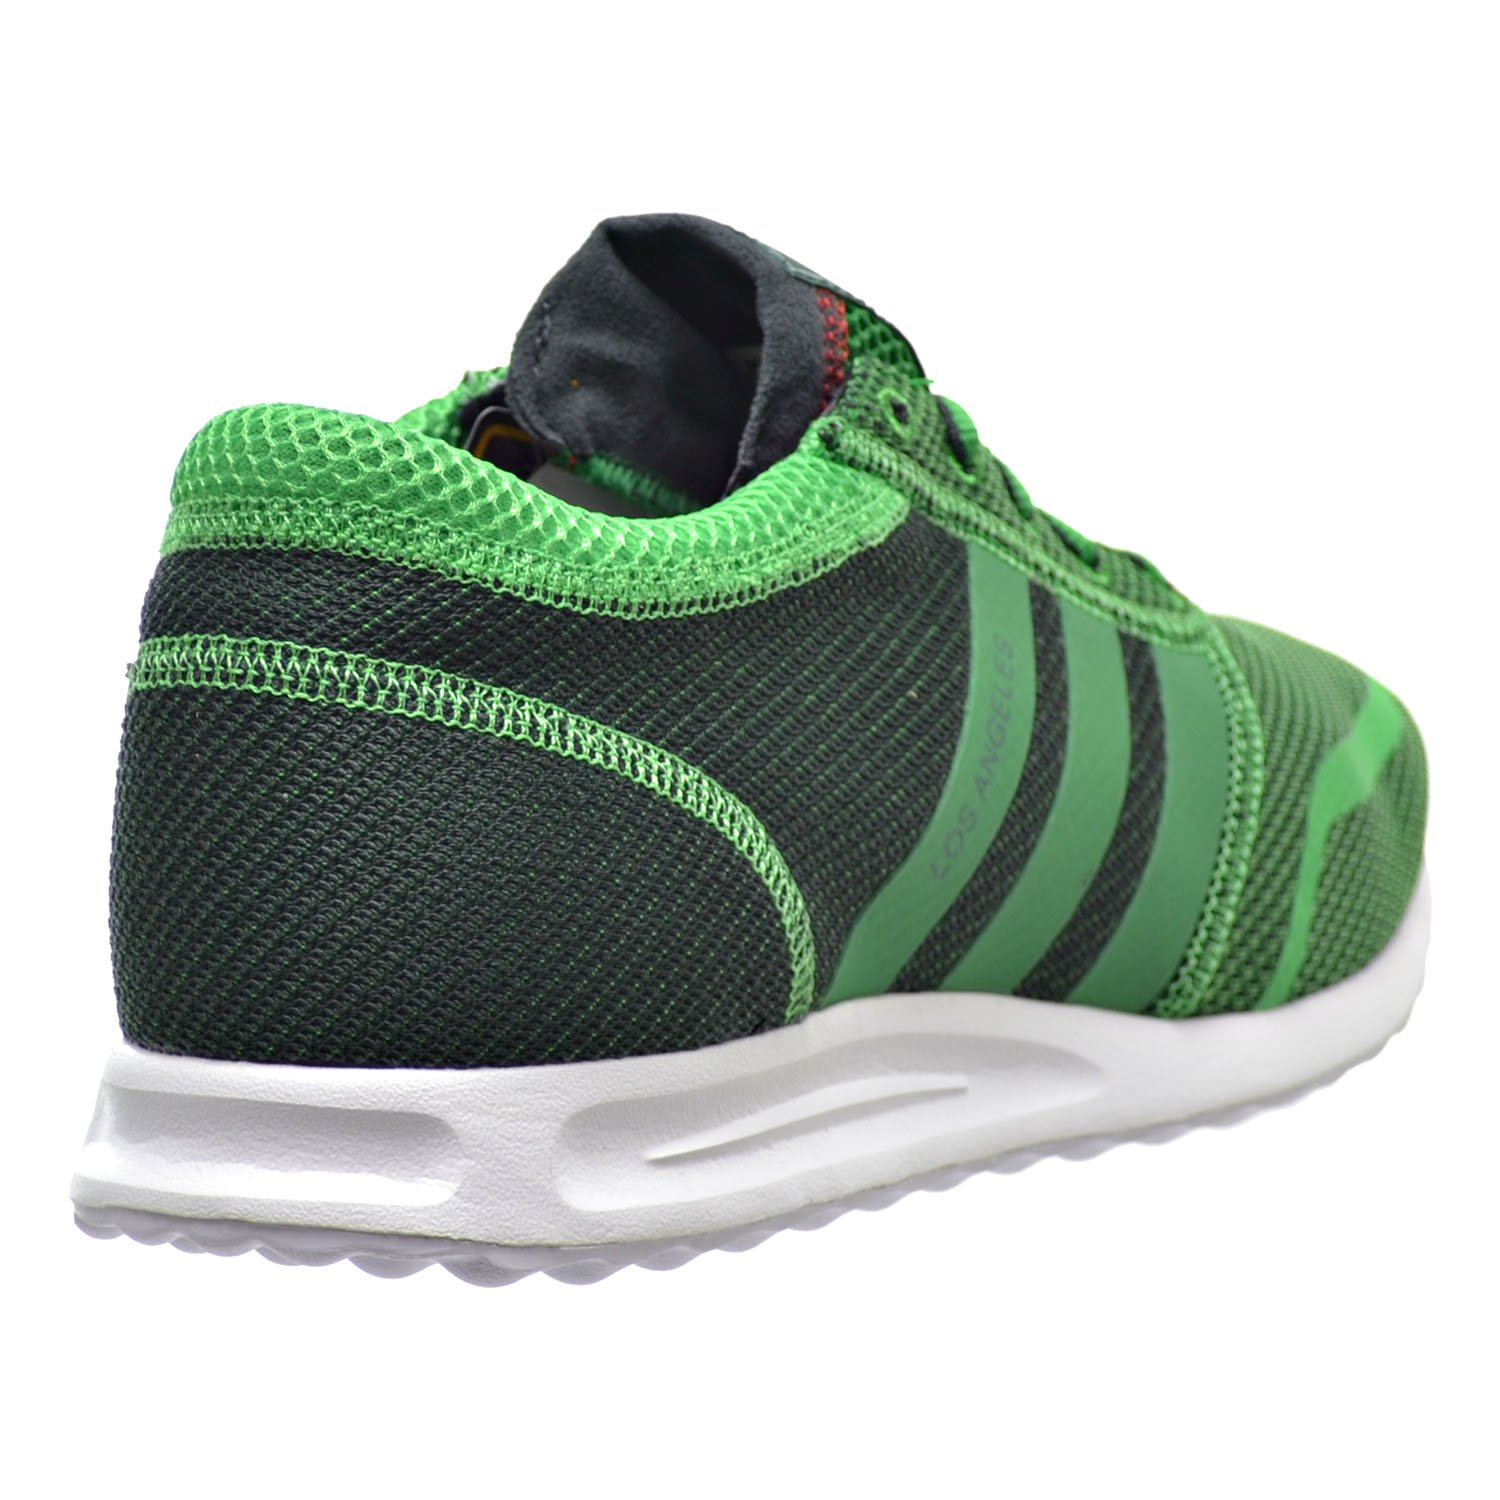 Amazon.com | Adidas Los Angeles Men's Shoes Green/Green/Carbon af4232 |  Running